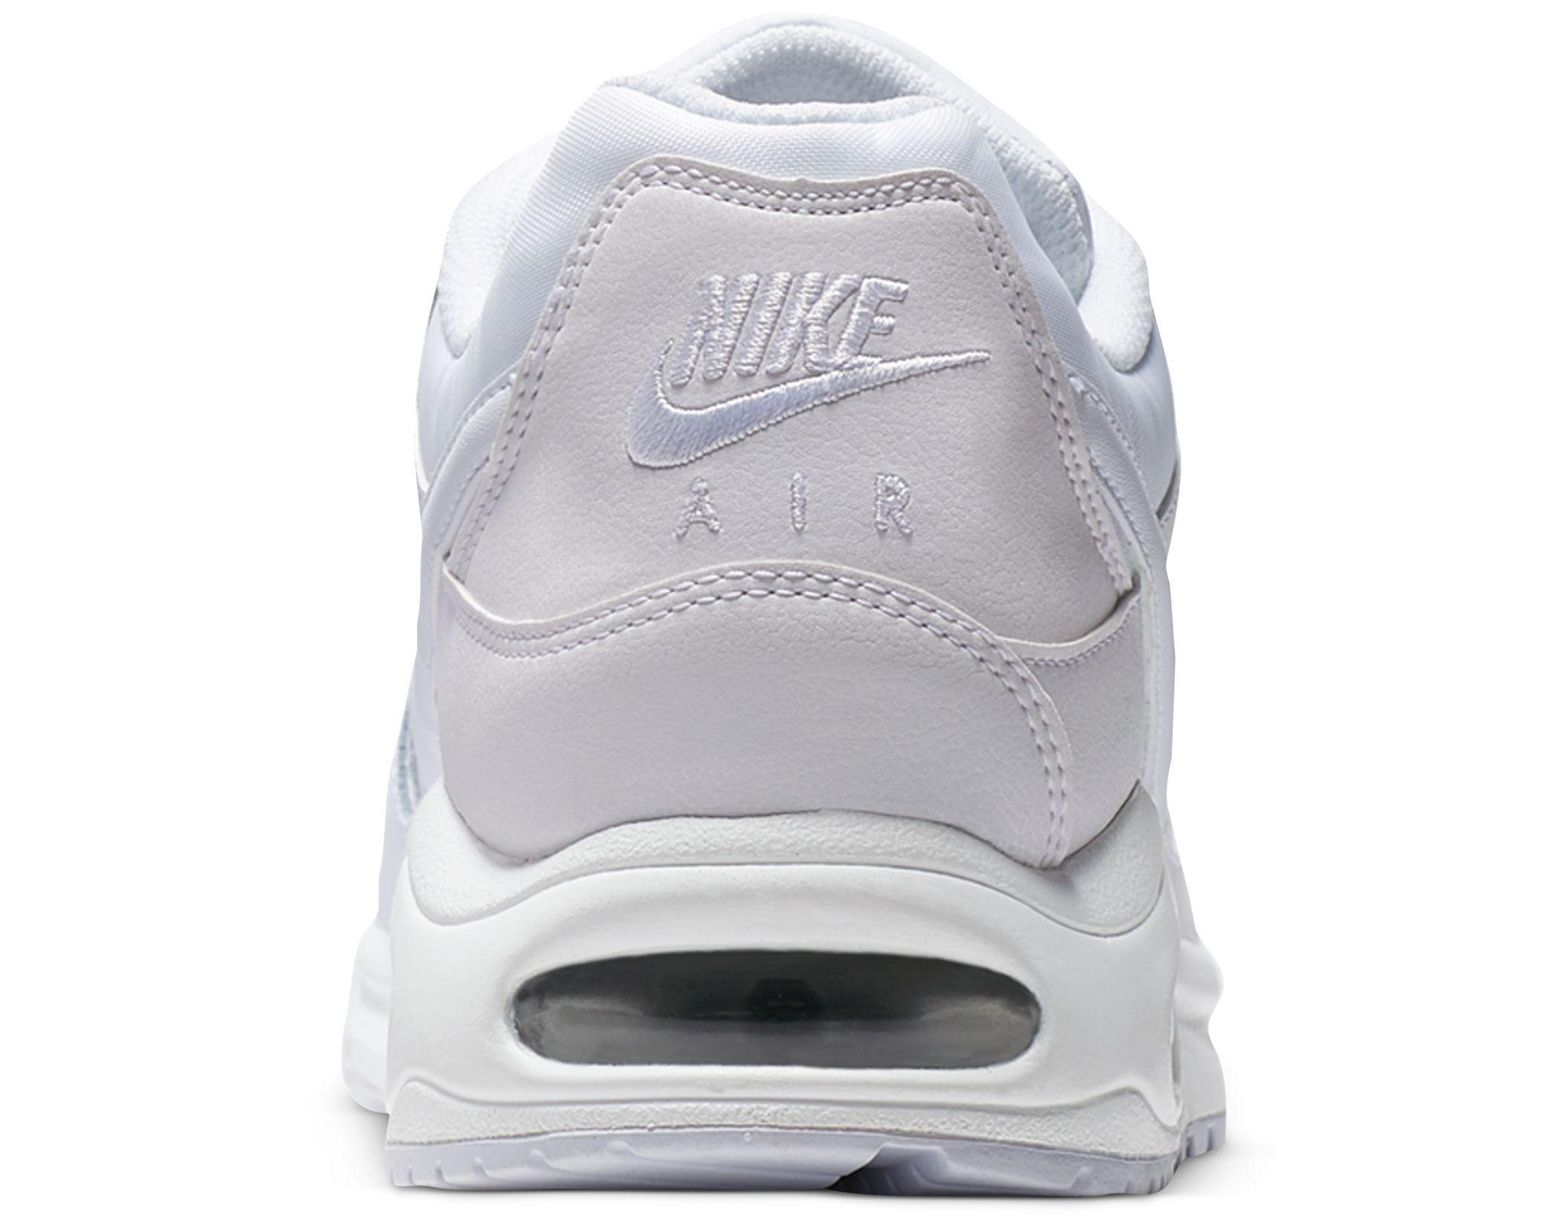 25186c556e Nike Air Max Command Leather Casual Sneakers From Finish Line in White for  Men - Lyst